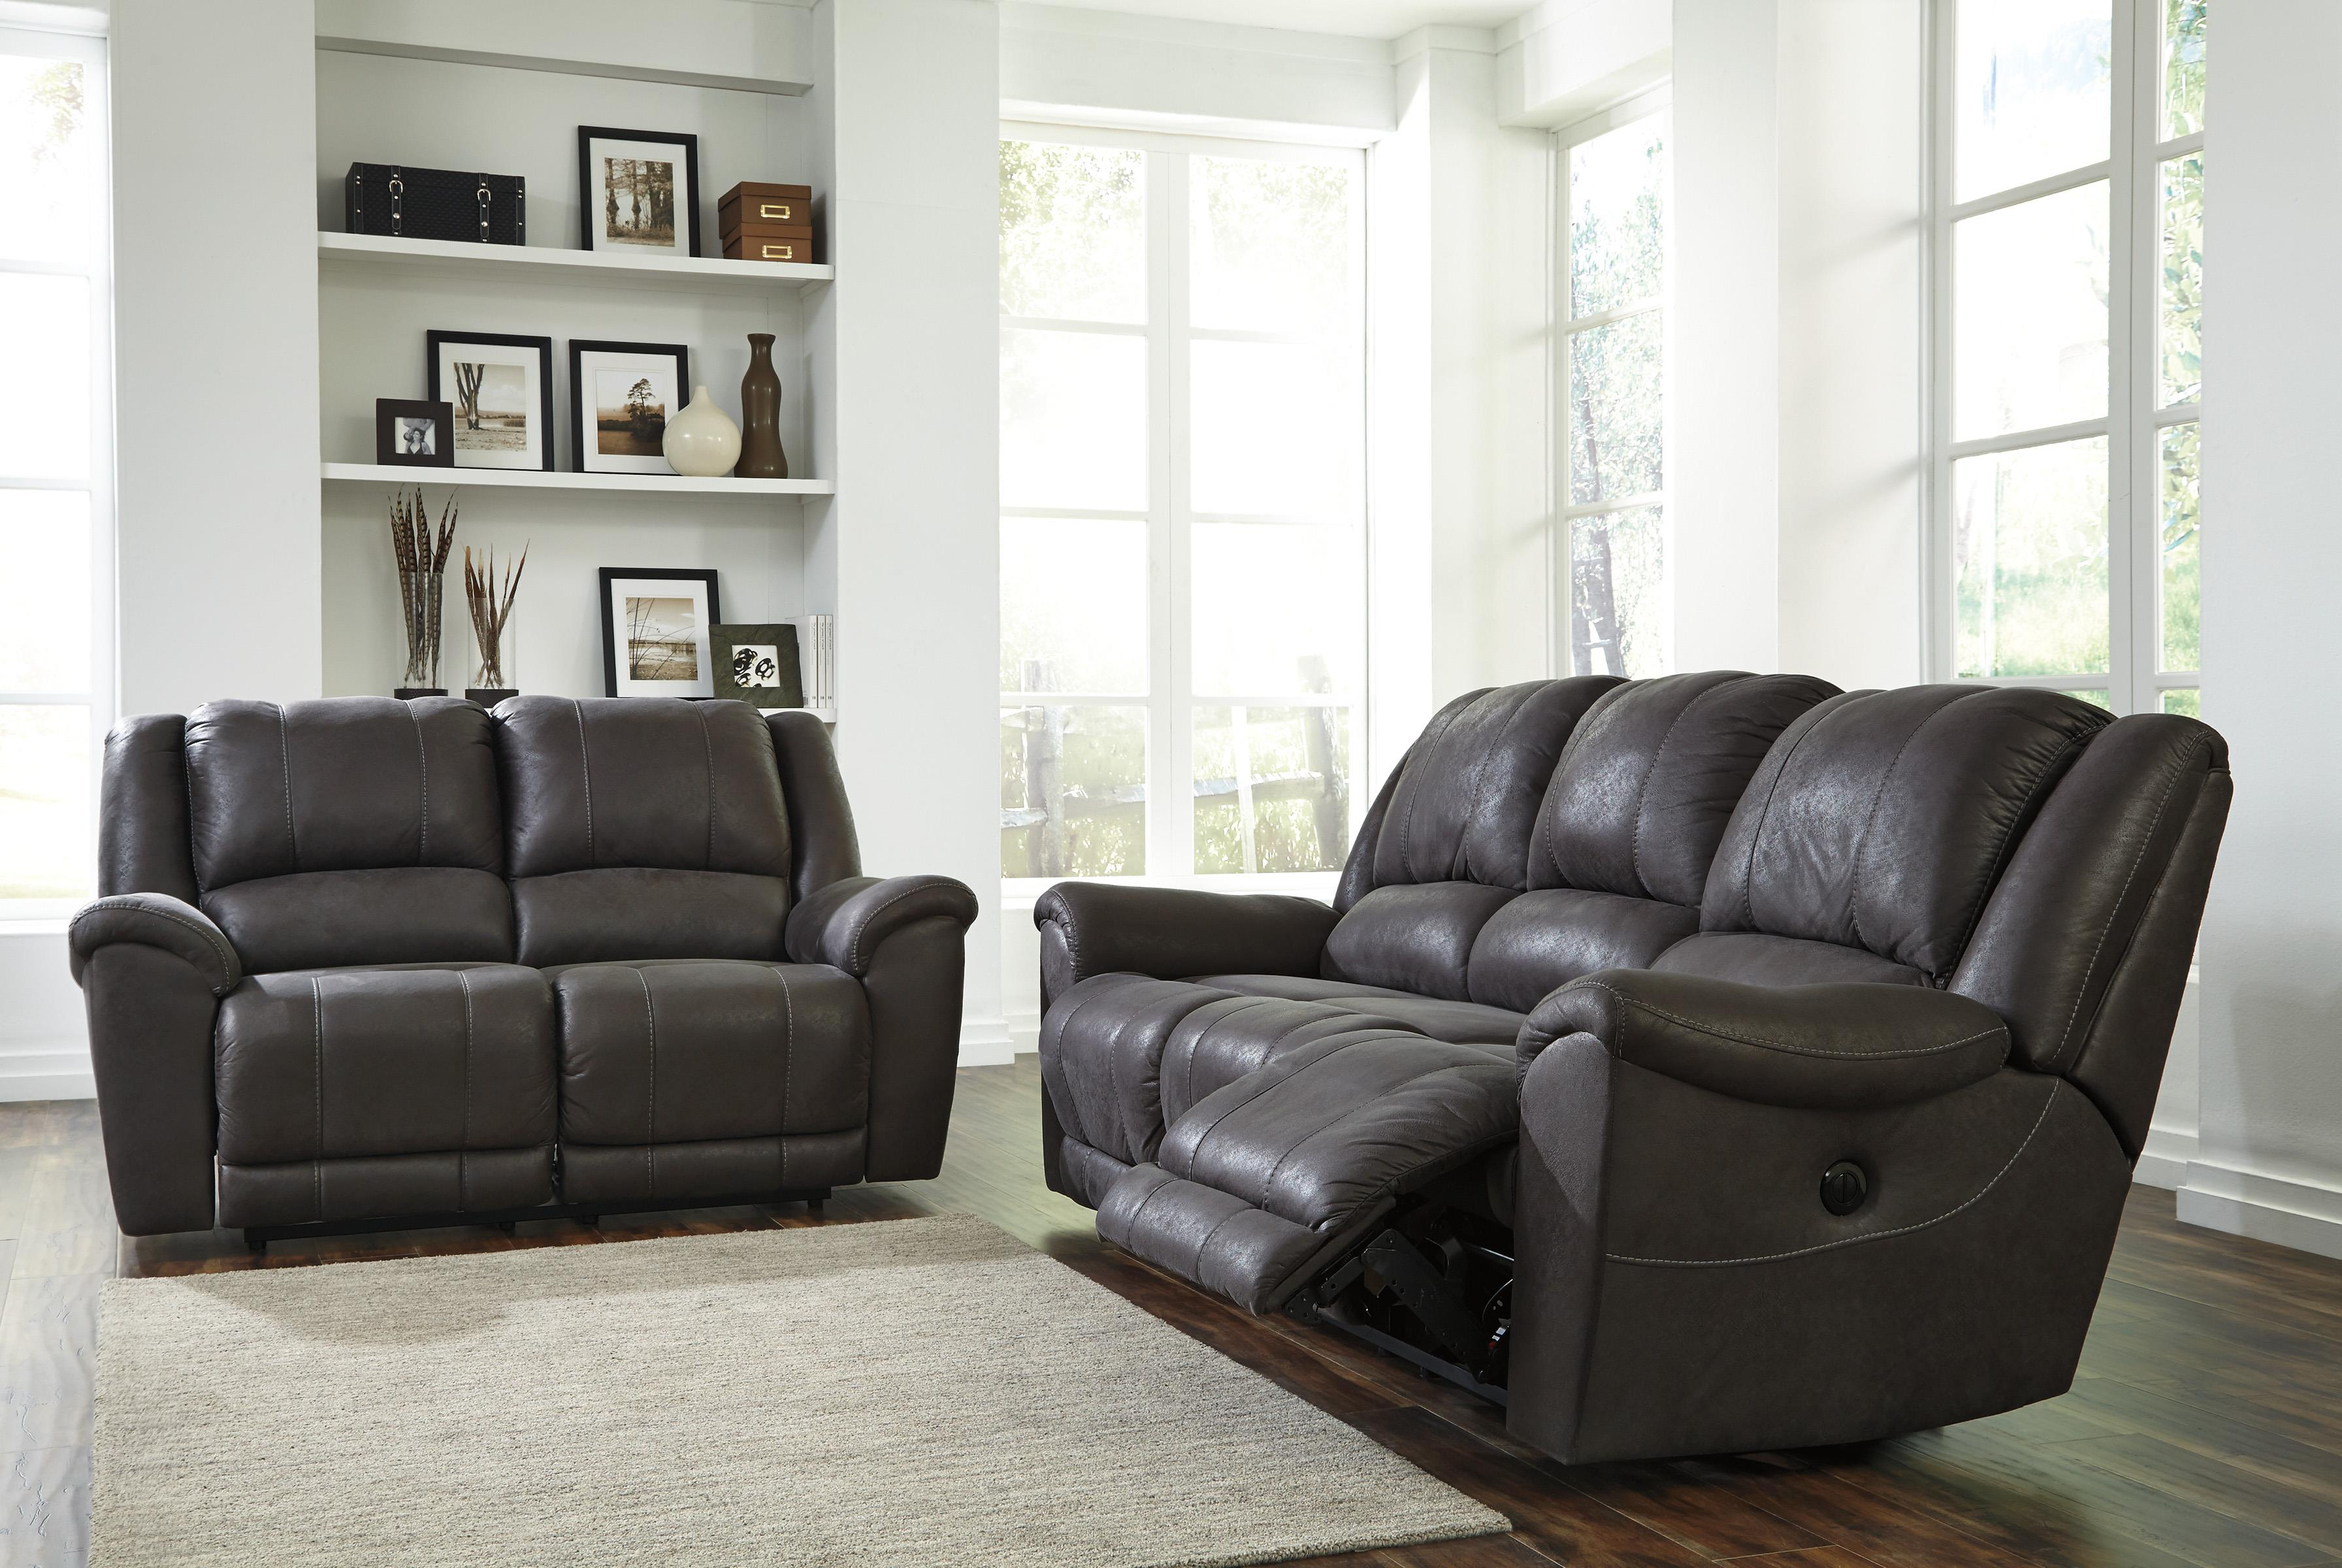 Benchcraft Niarobi Reclining Living Room Group - Item Number: 40600 Living Room Group 1